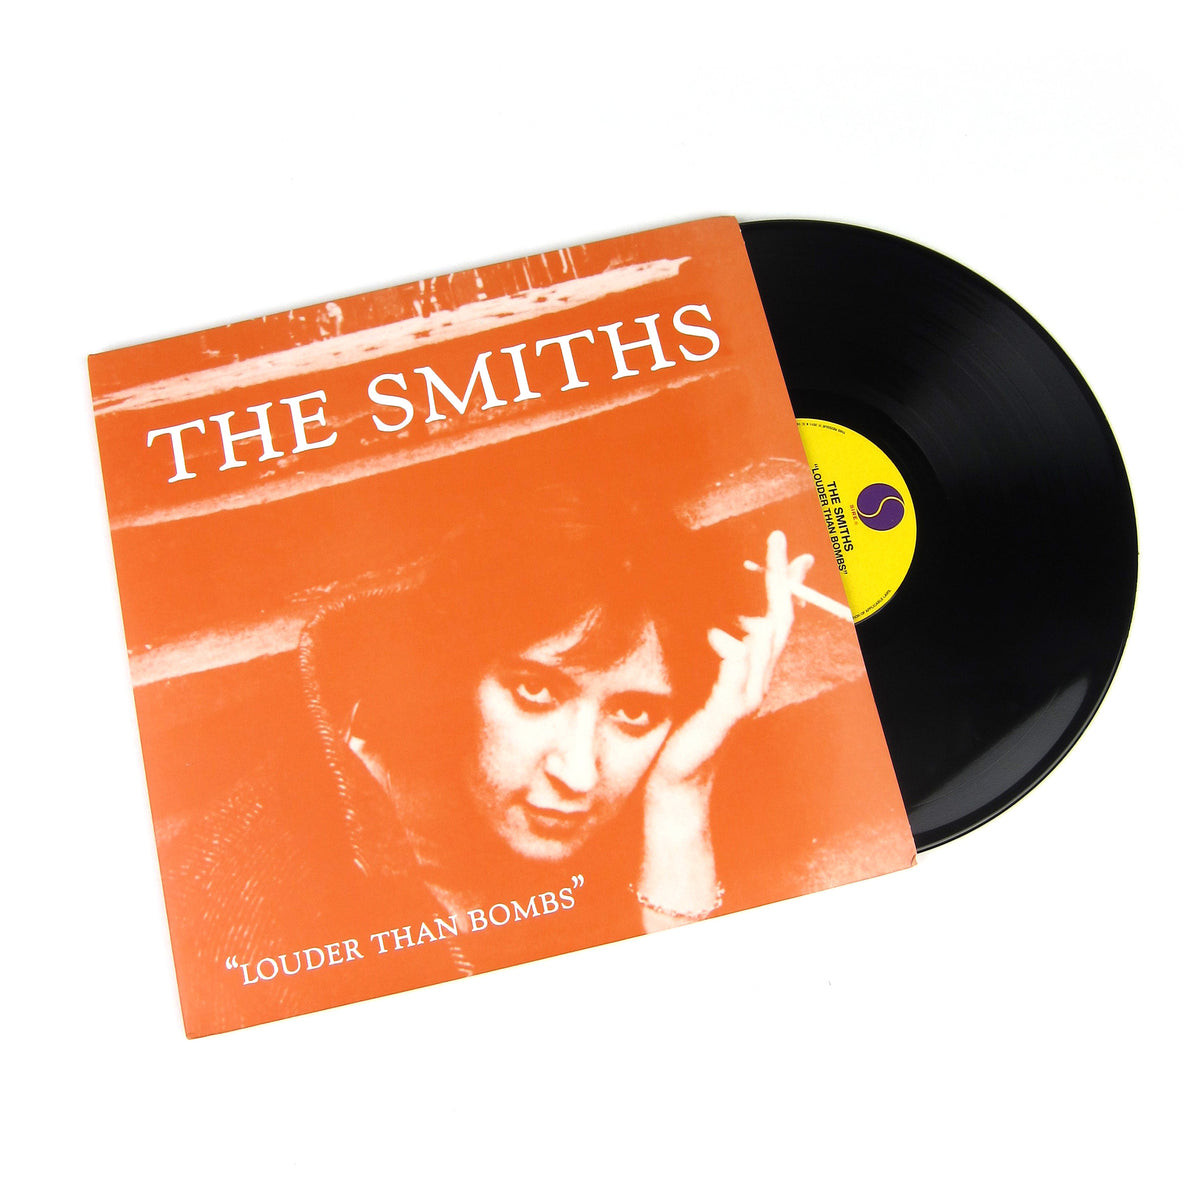 The Smiths: Louder Than Bombs (180g) Vinyl 2LP